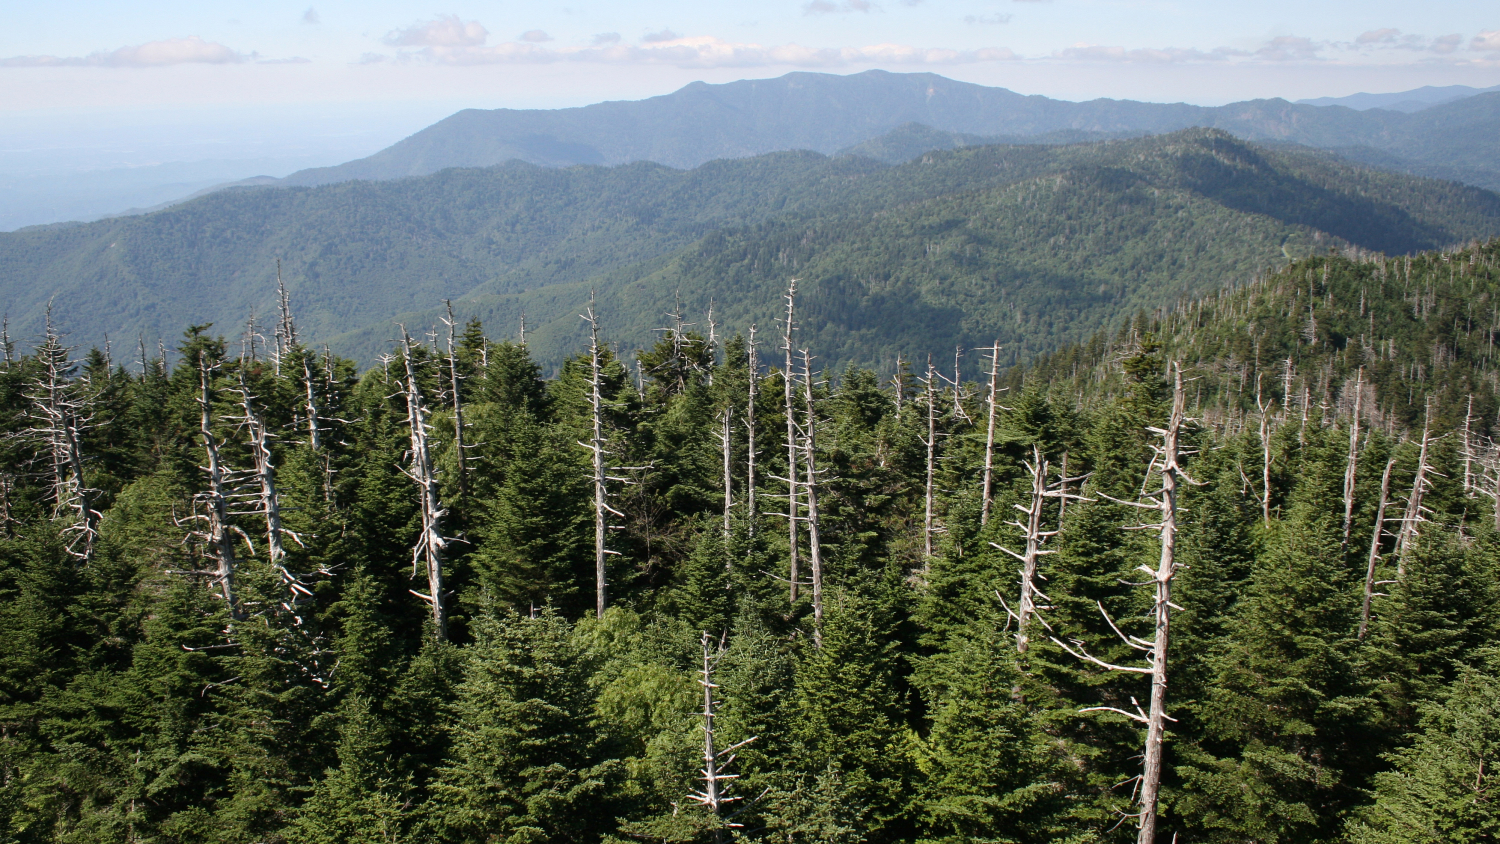 Skeletonized Fraser fir trees in the forest on the summit of Clingmans Dome in Great Smoky Mountains Mountains National Park.